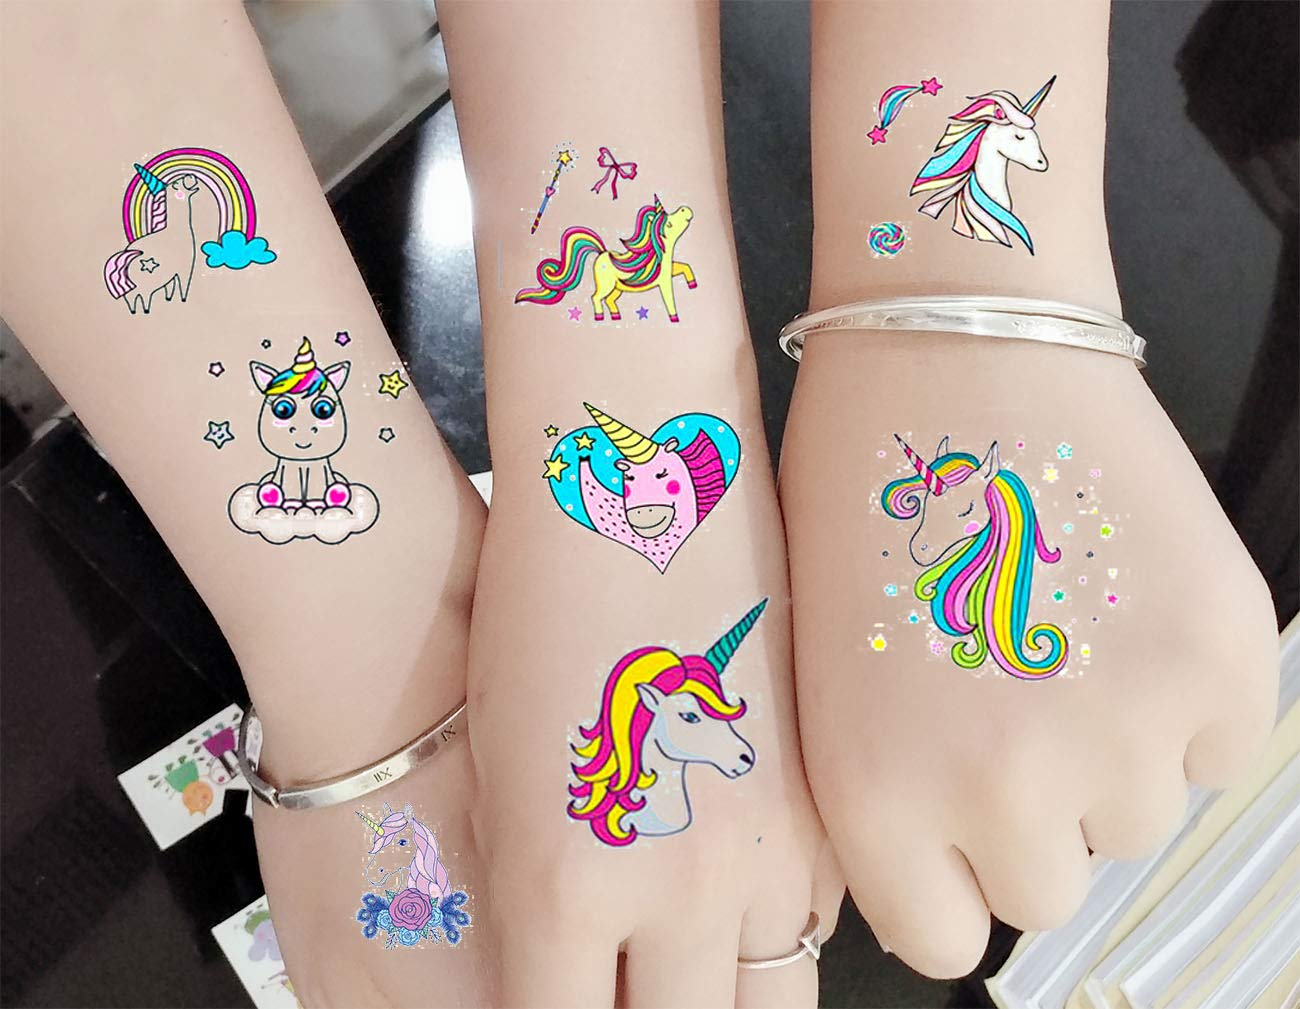 M.owstoni Unicorn Party Supplies Tattoos for Kids - 70 Glitter Styles Unicorn Party Favors and Birthday Decorations + Halloween Costume 3